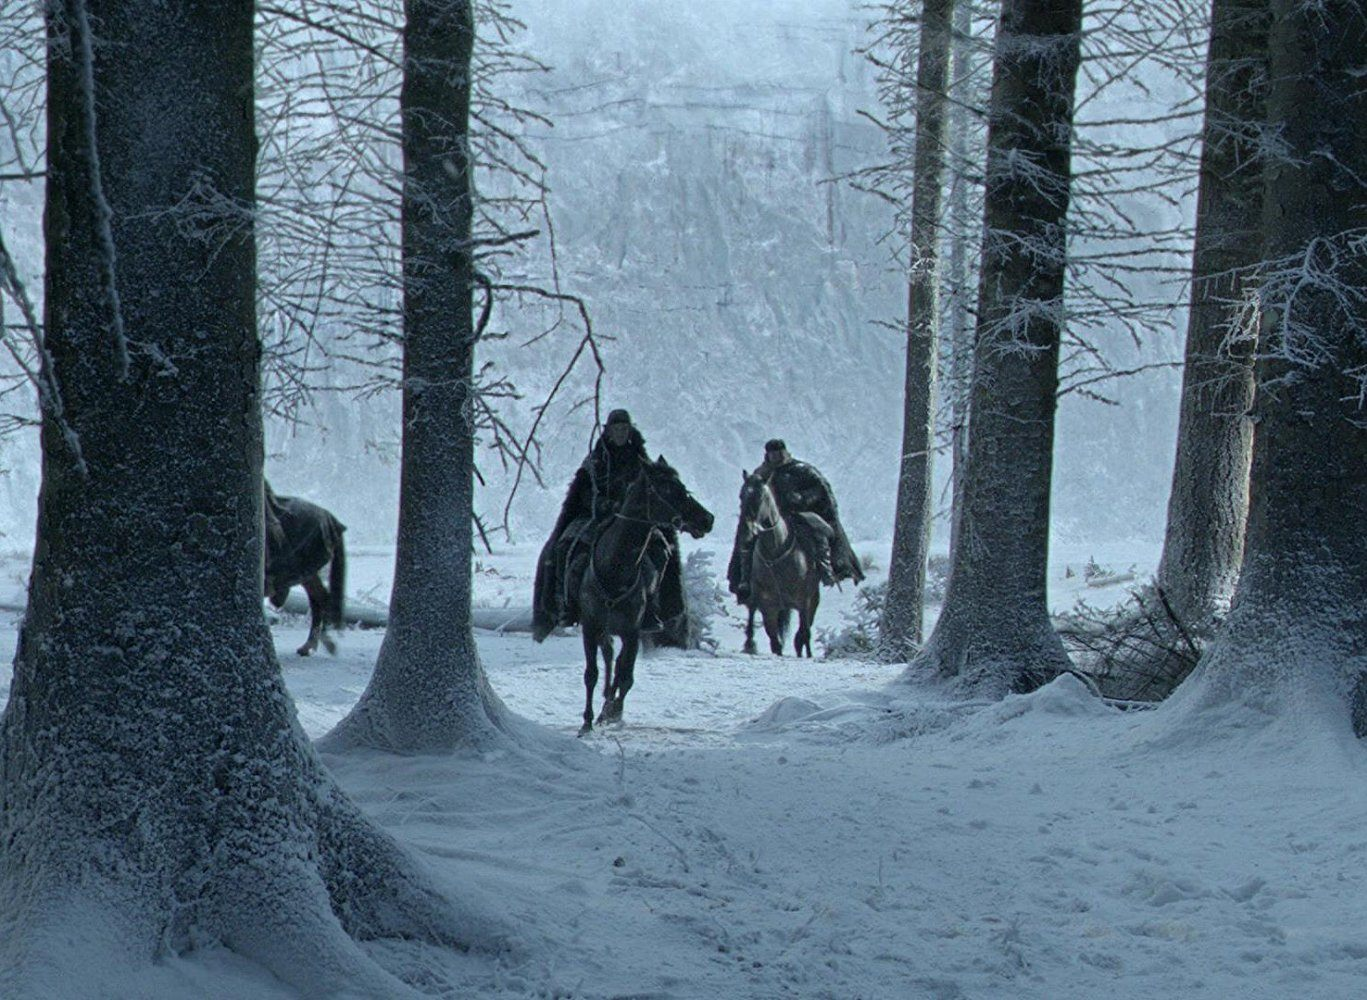 Men riding horses in the woods where snow has fallen.